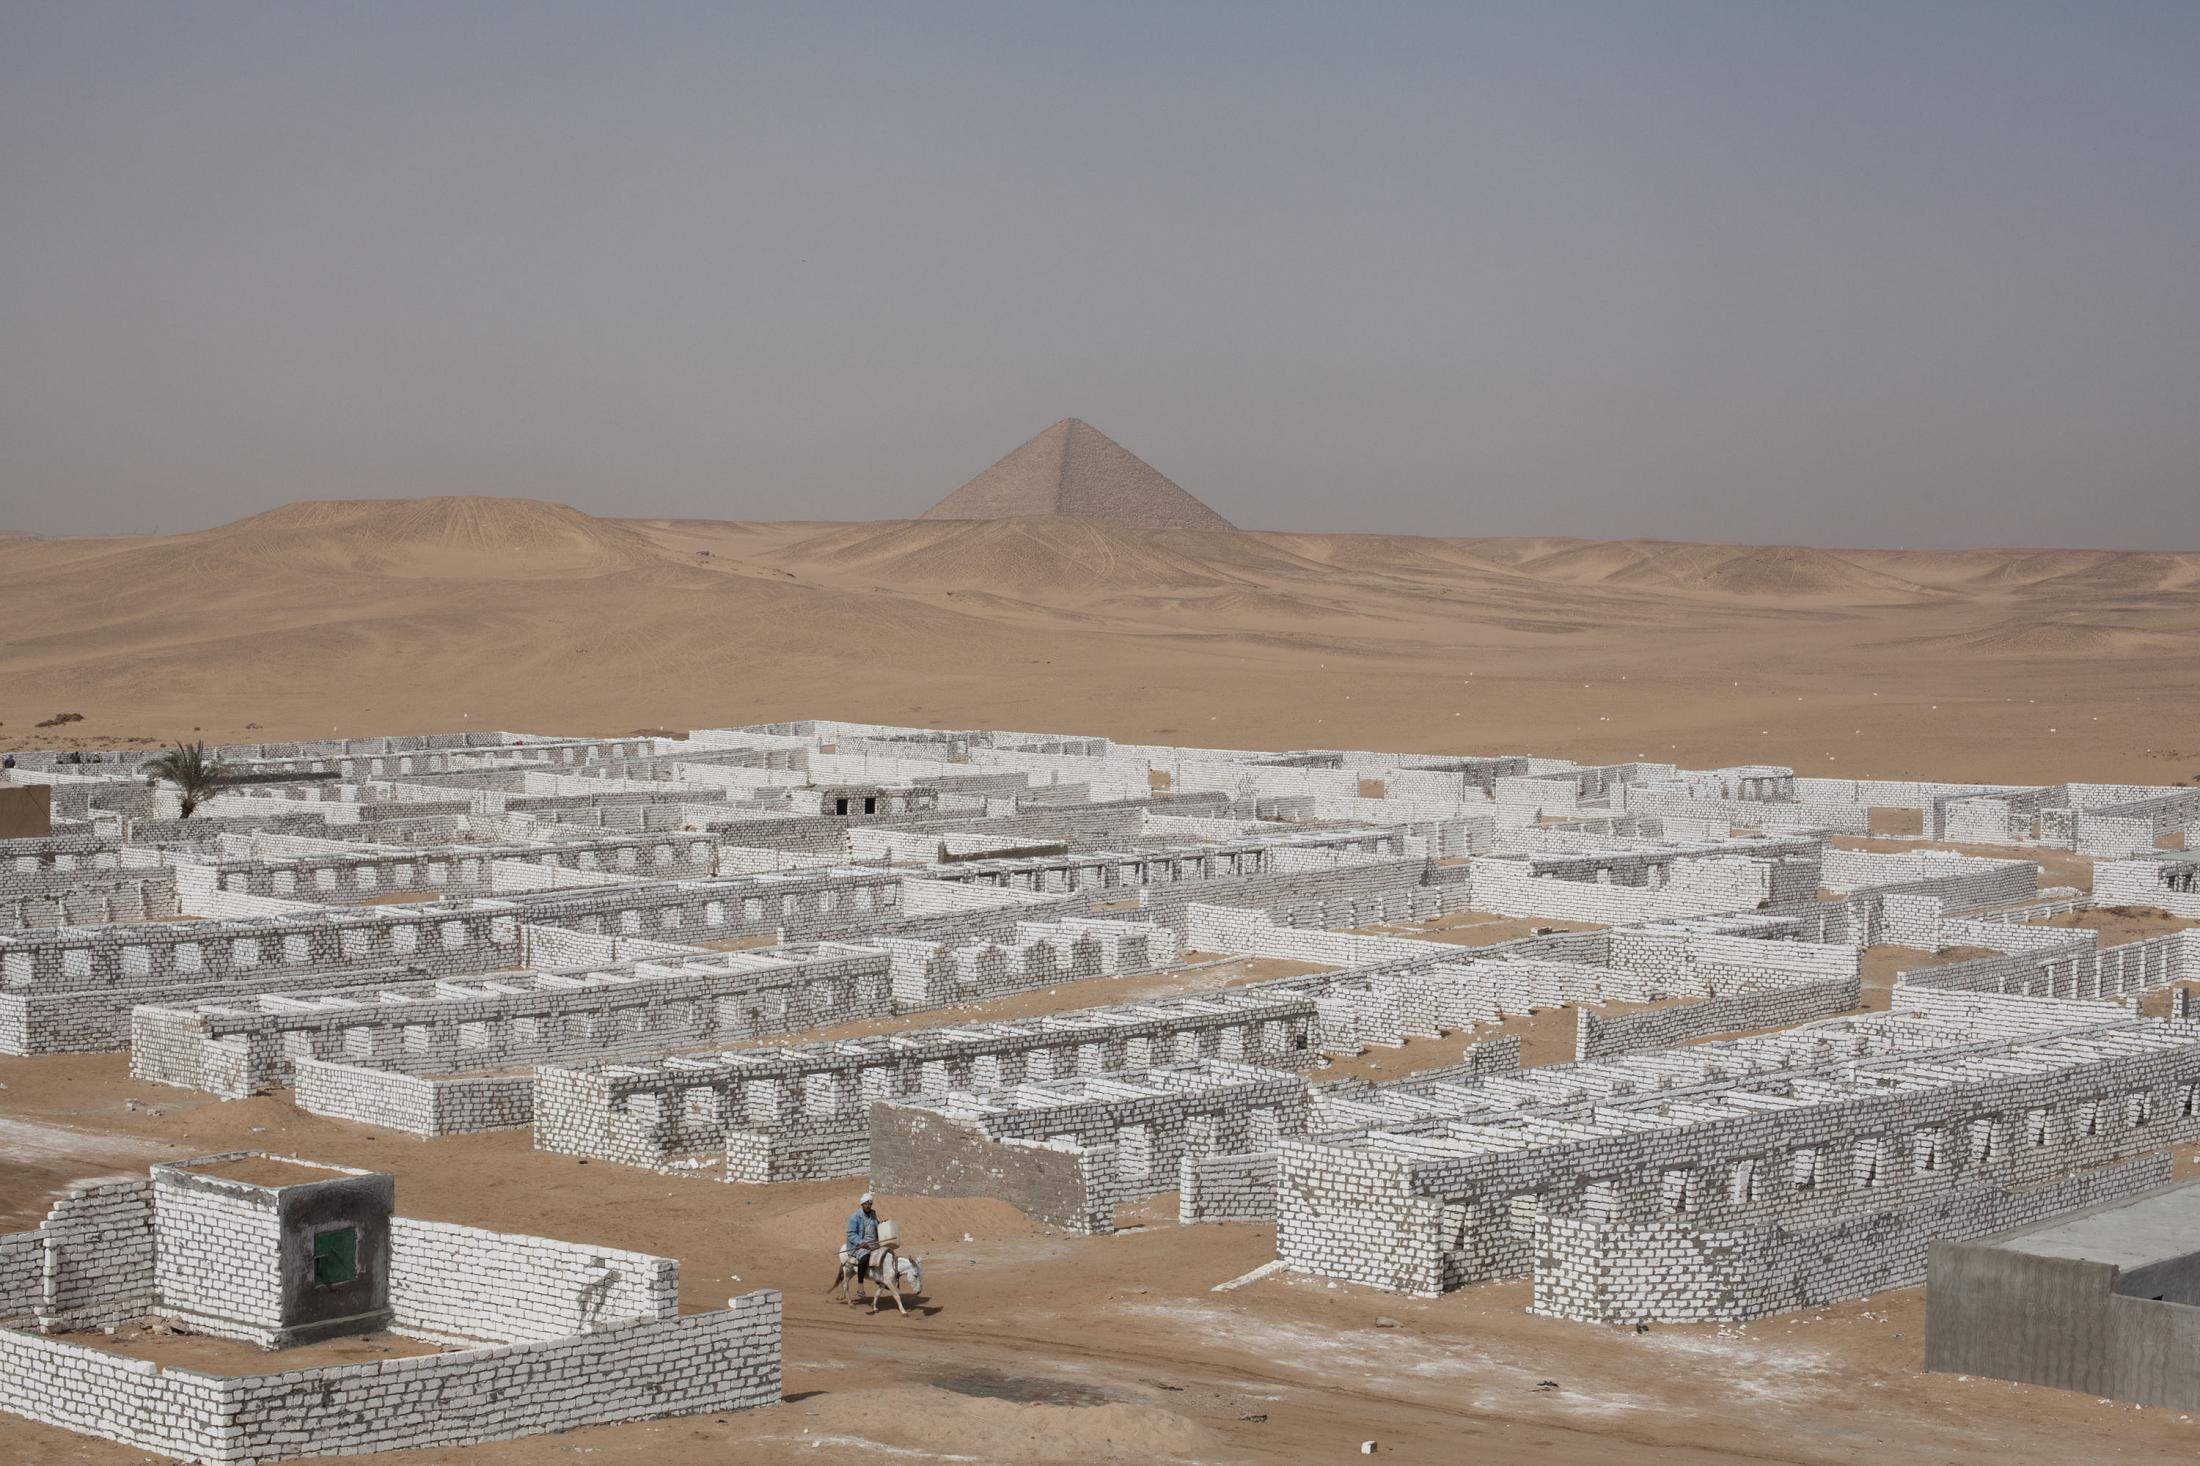 A man on a donkey passing through a white stone wall cemetery.  Sneferu's first smooth sided Red Pyramid can be seen in the distance.